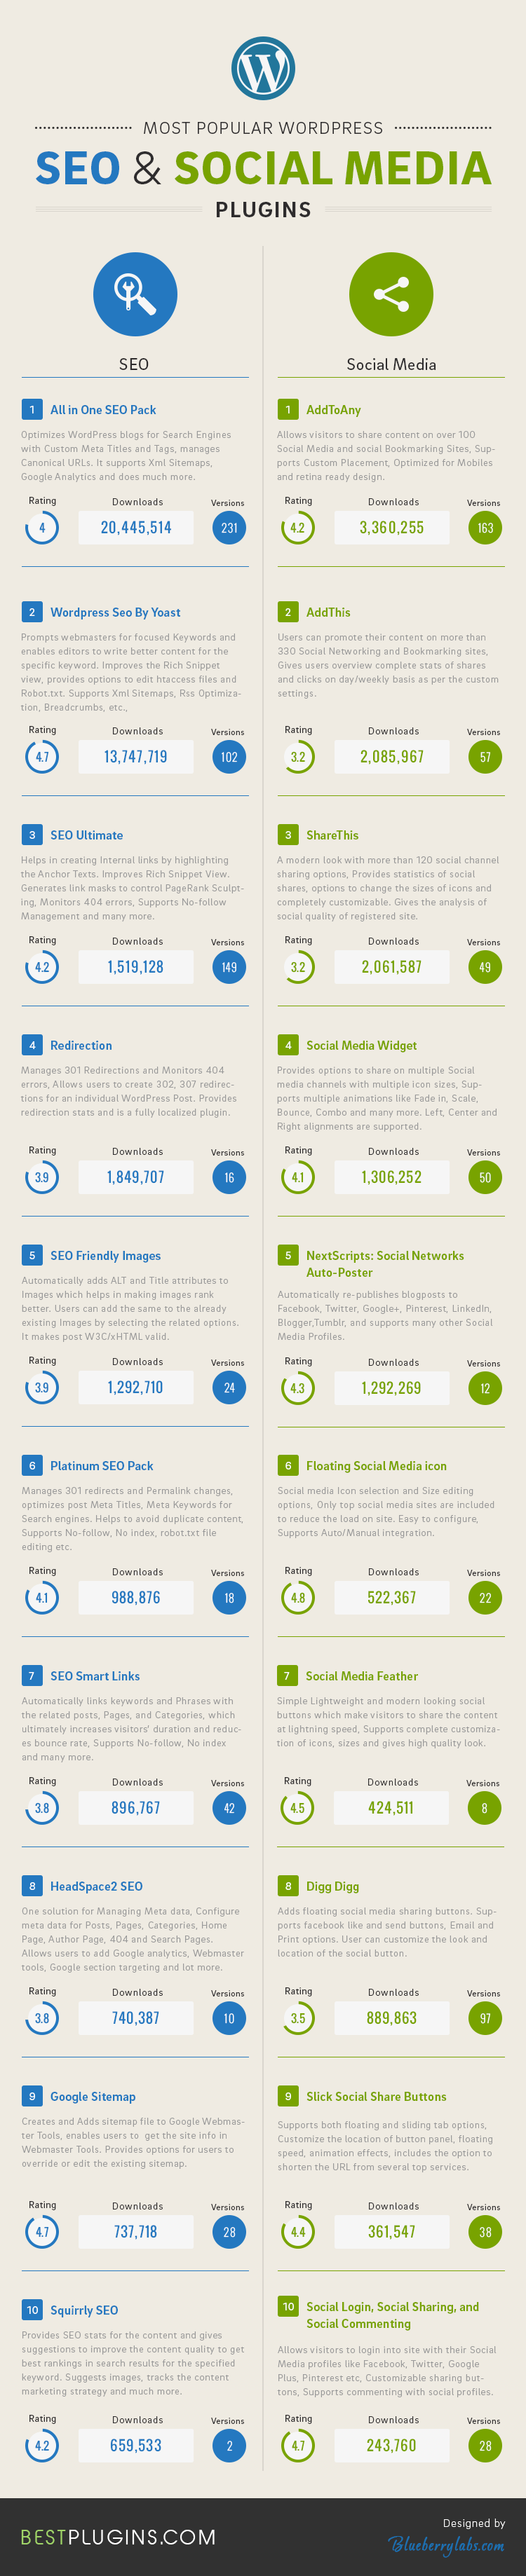 Most-Popular-WordPress-Seo-and-social-media-plugins